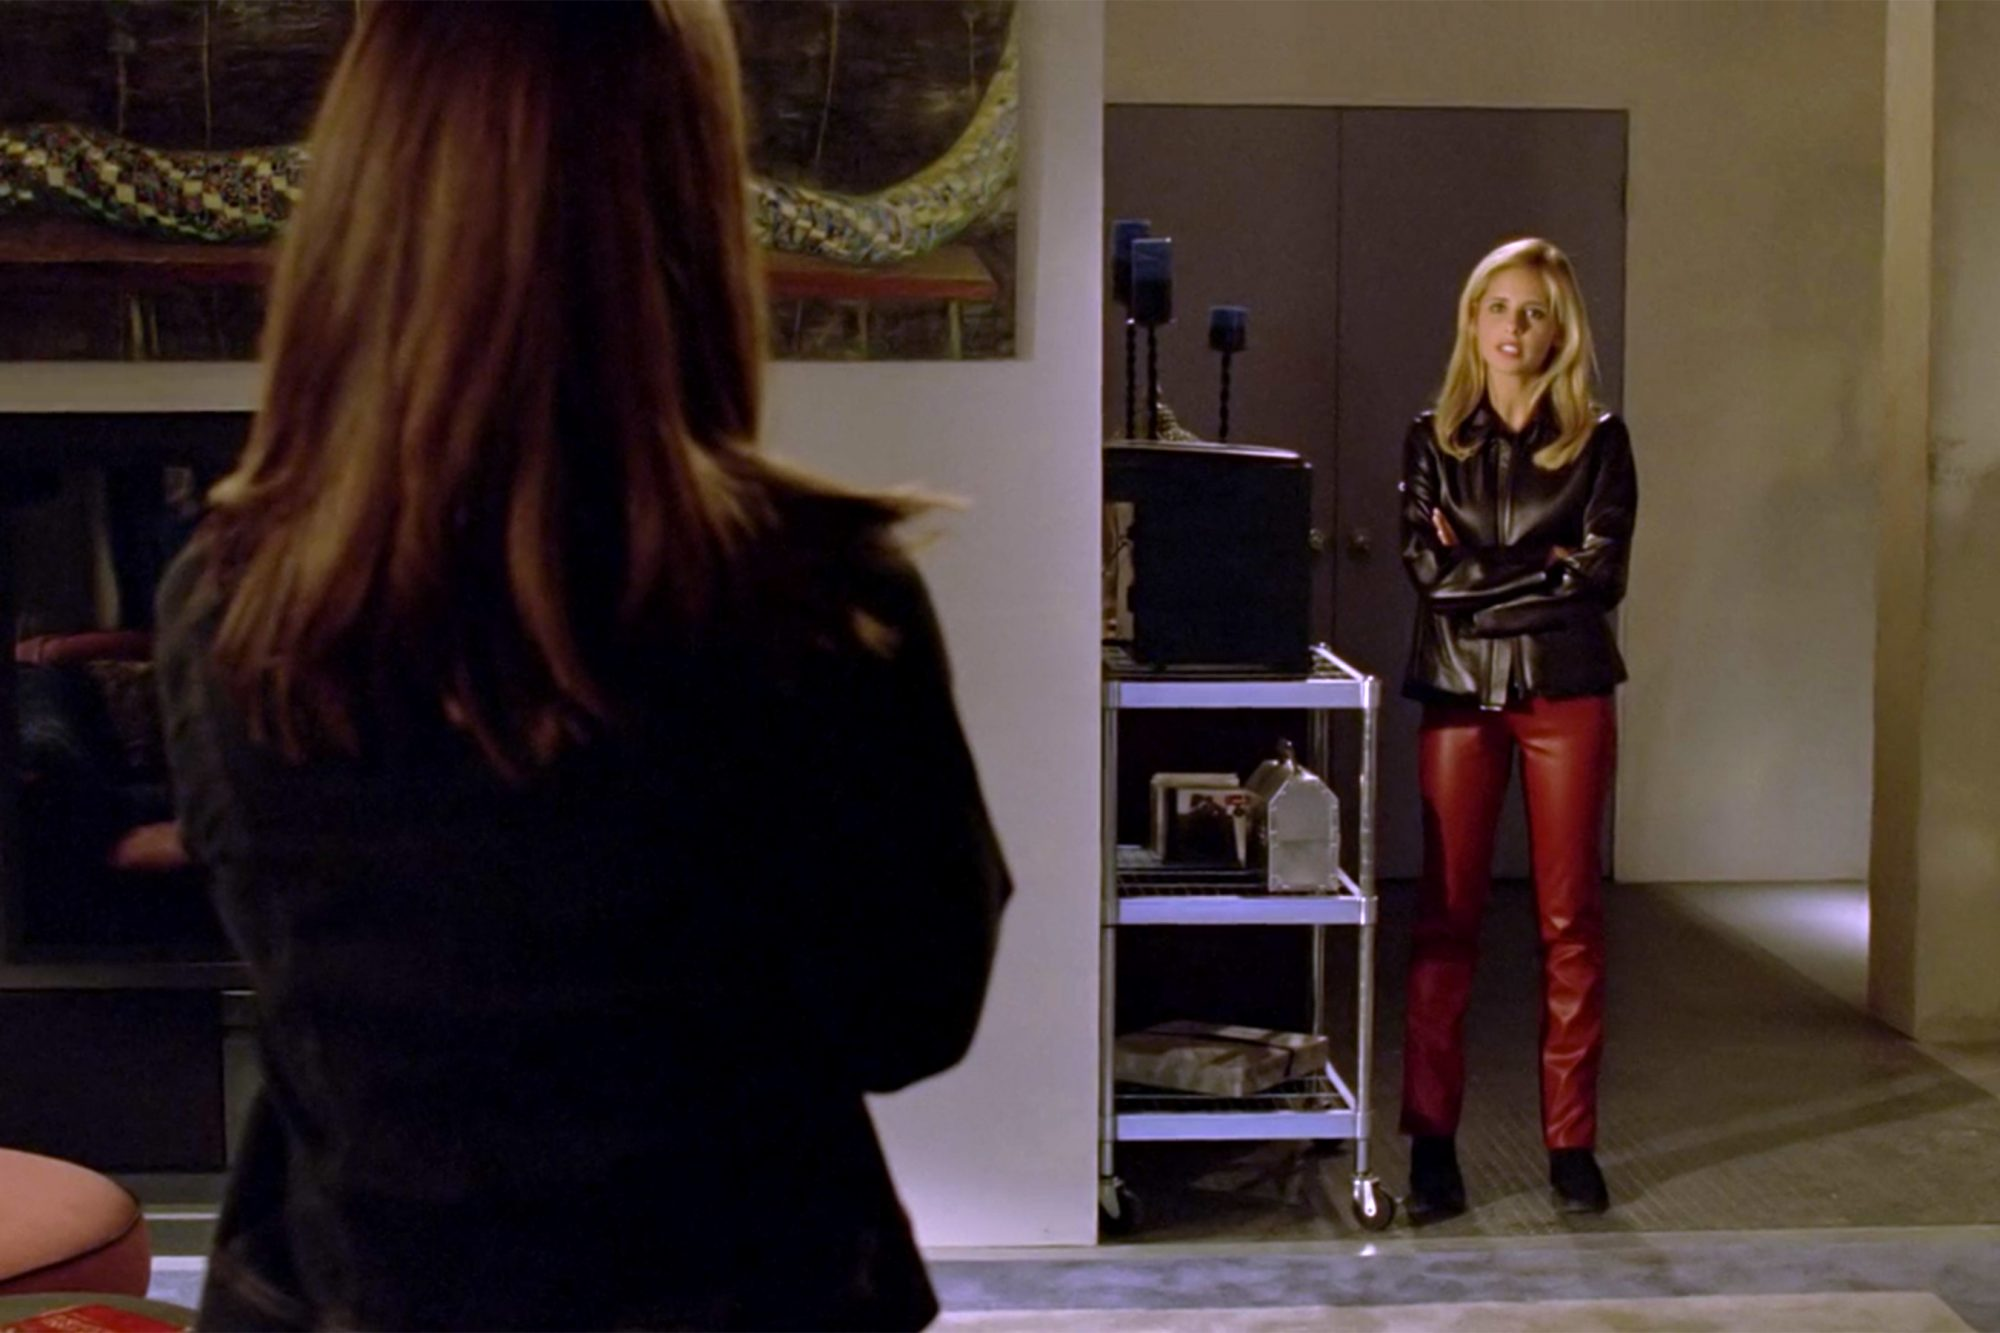 The Red Leather Pants